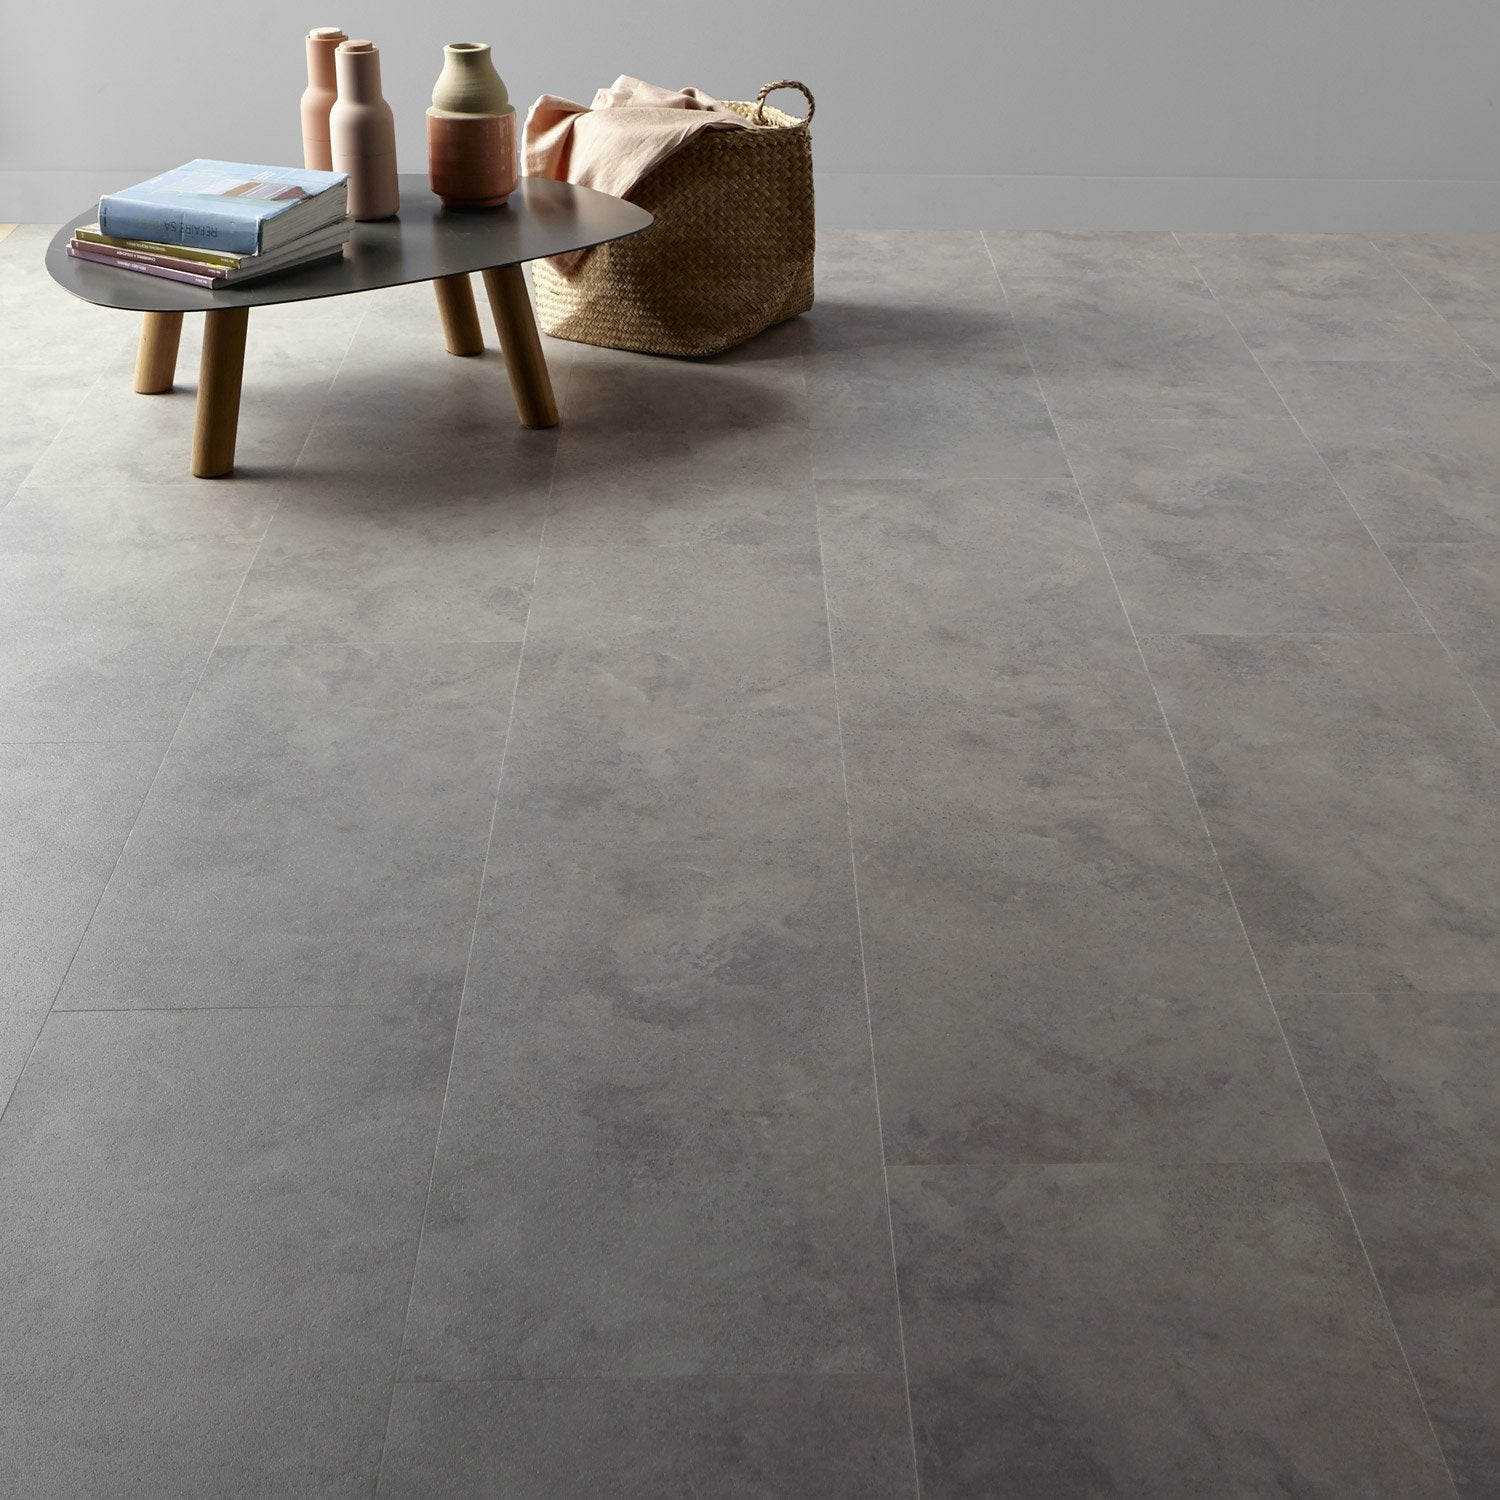 Dalle pvc clipsable taupe flagstone senso lock gerflor leroy merlin - Dalle pvc leroy merlin ...